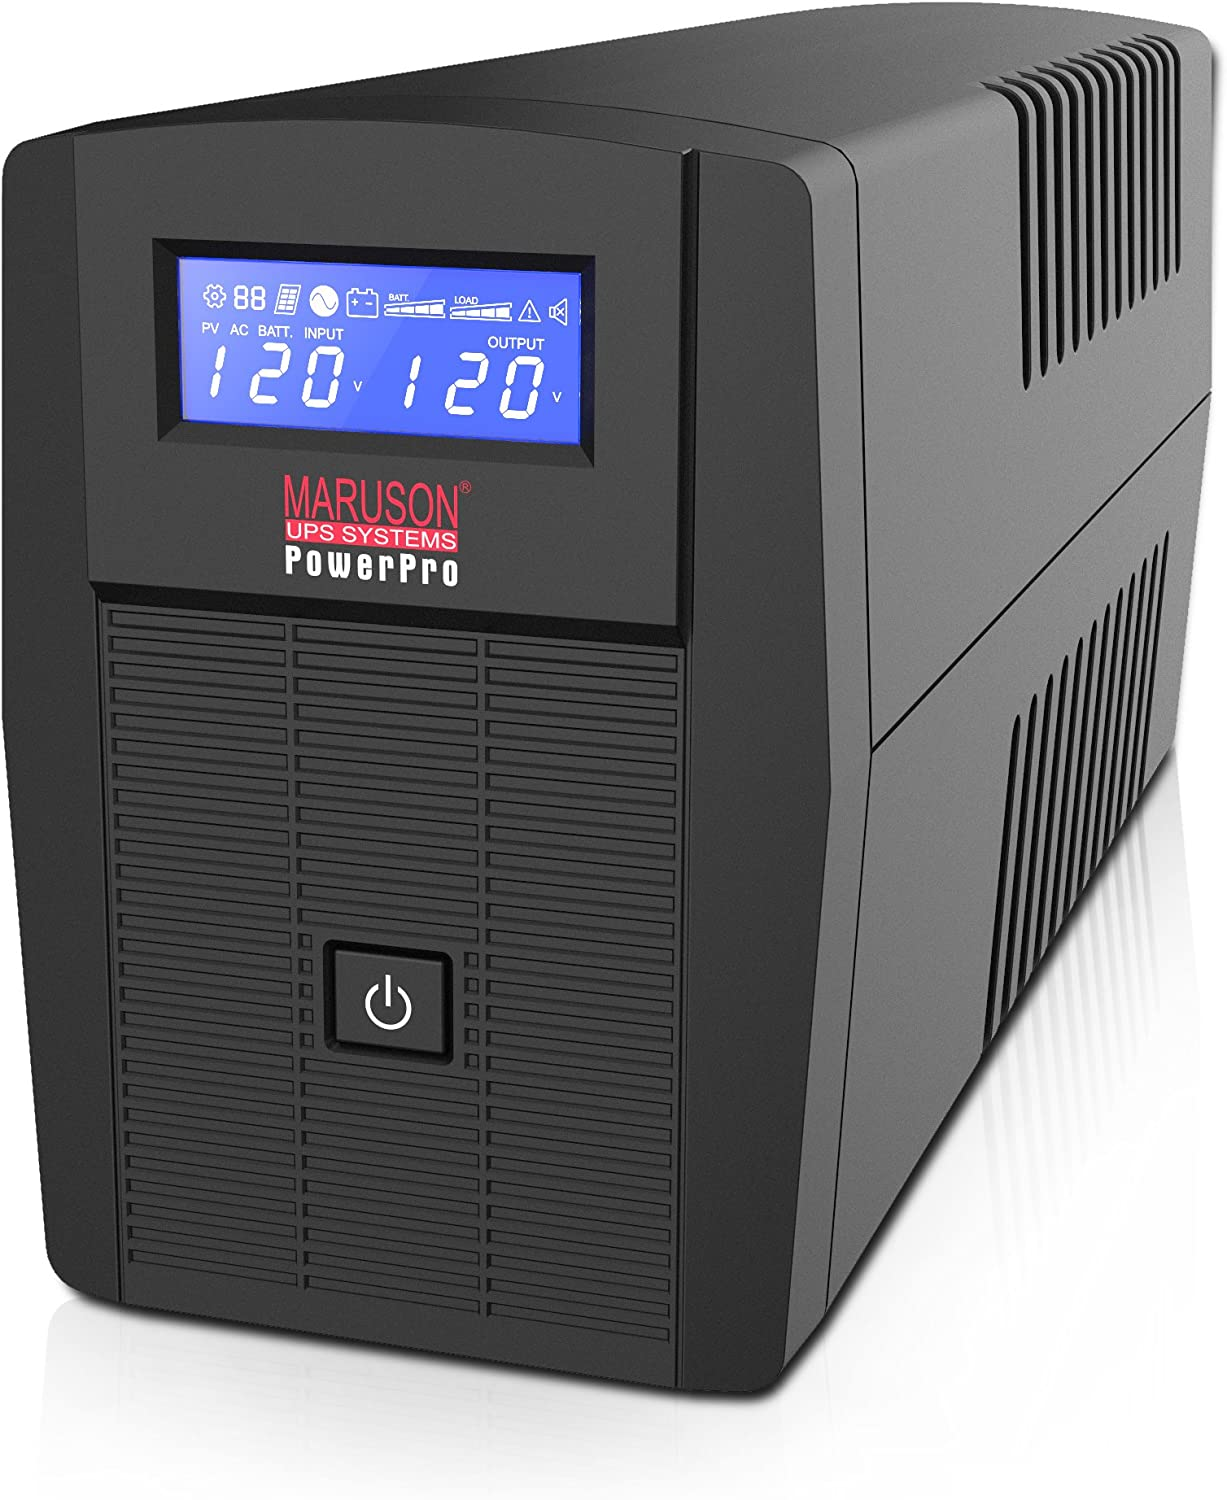 MARUSON 800VA UPS Battery Backup & Surge Protector, AVR, 735J Surge Protection, 6 Outlets, Line Interactive Uninterruptible Power Supply System, TUV Certified, PRO-800LCD Power Pro LCD 800VA / 450W